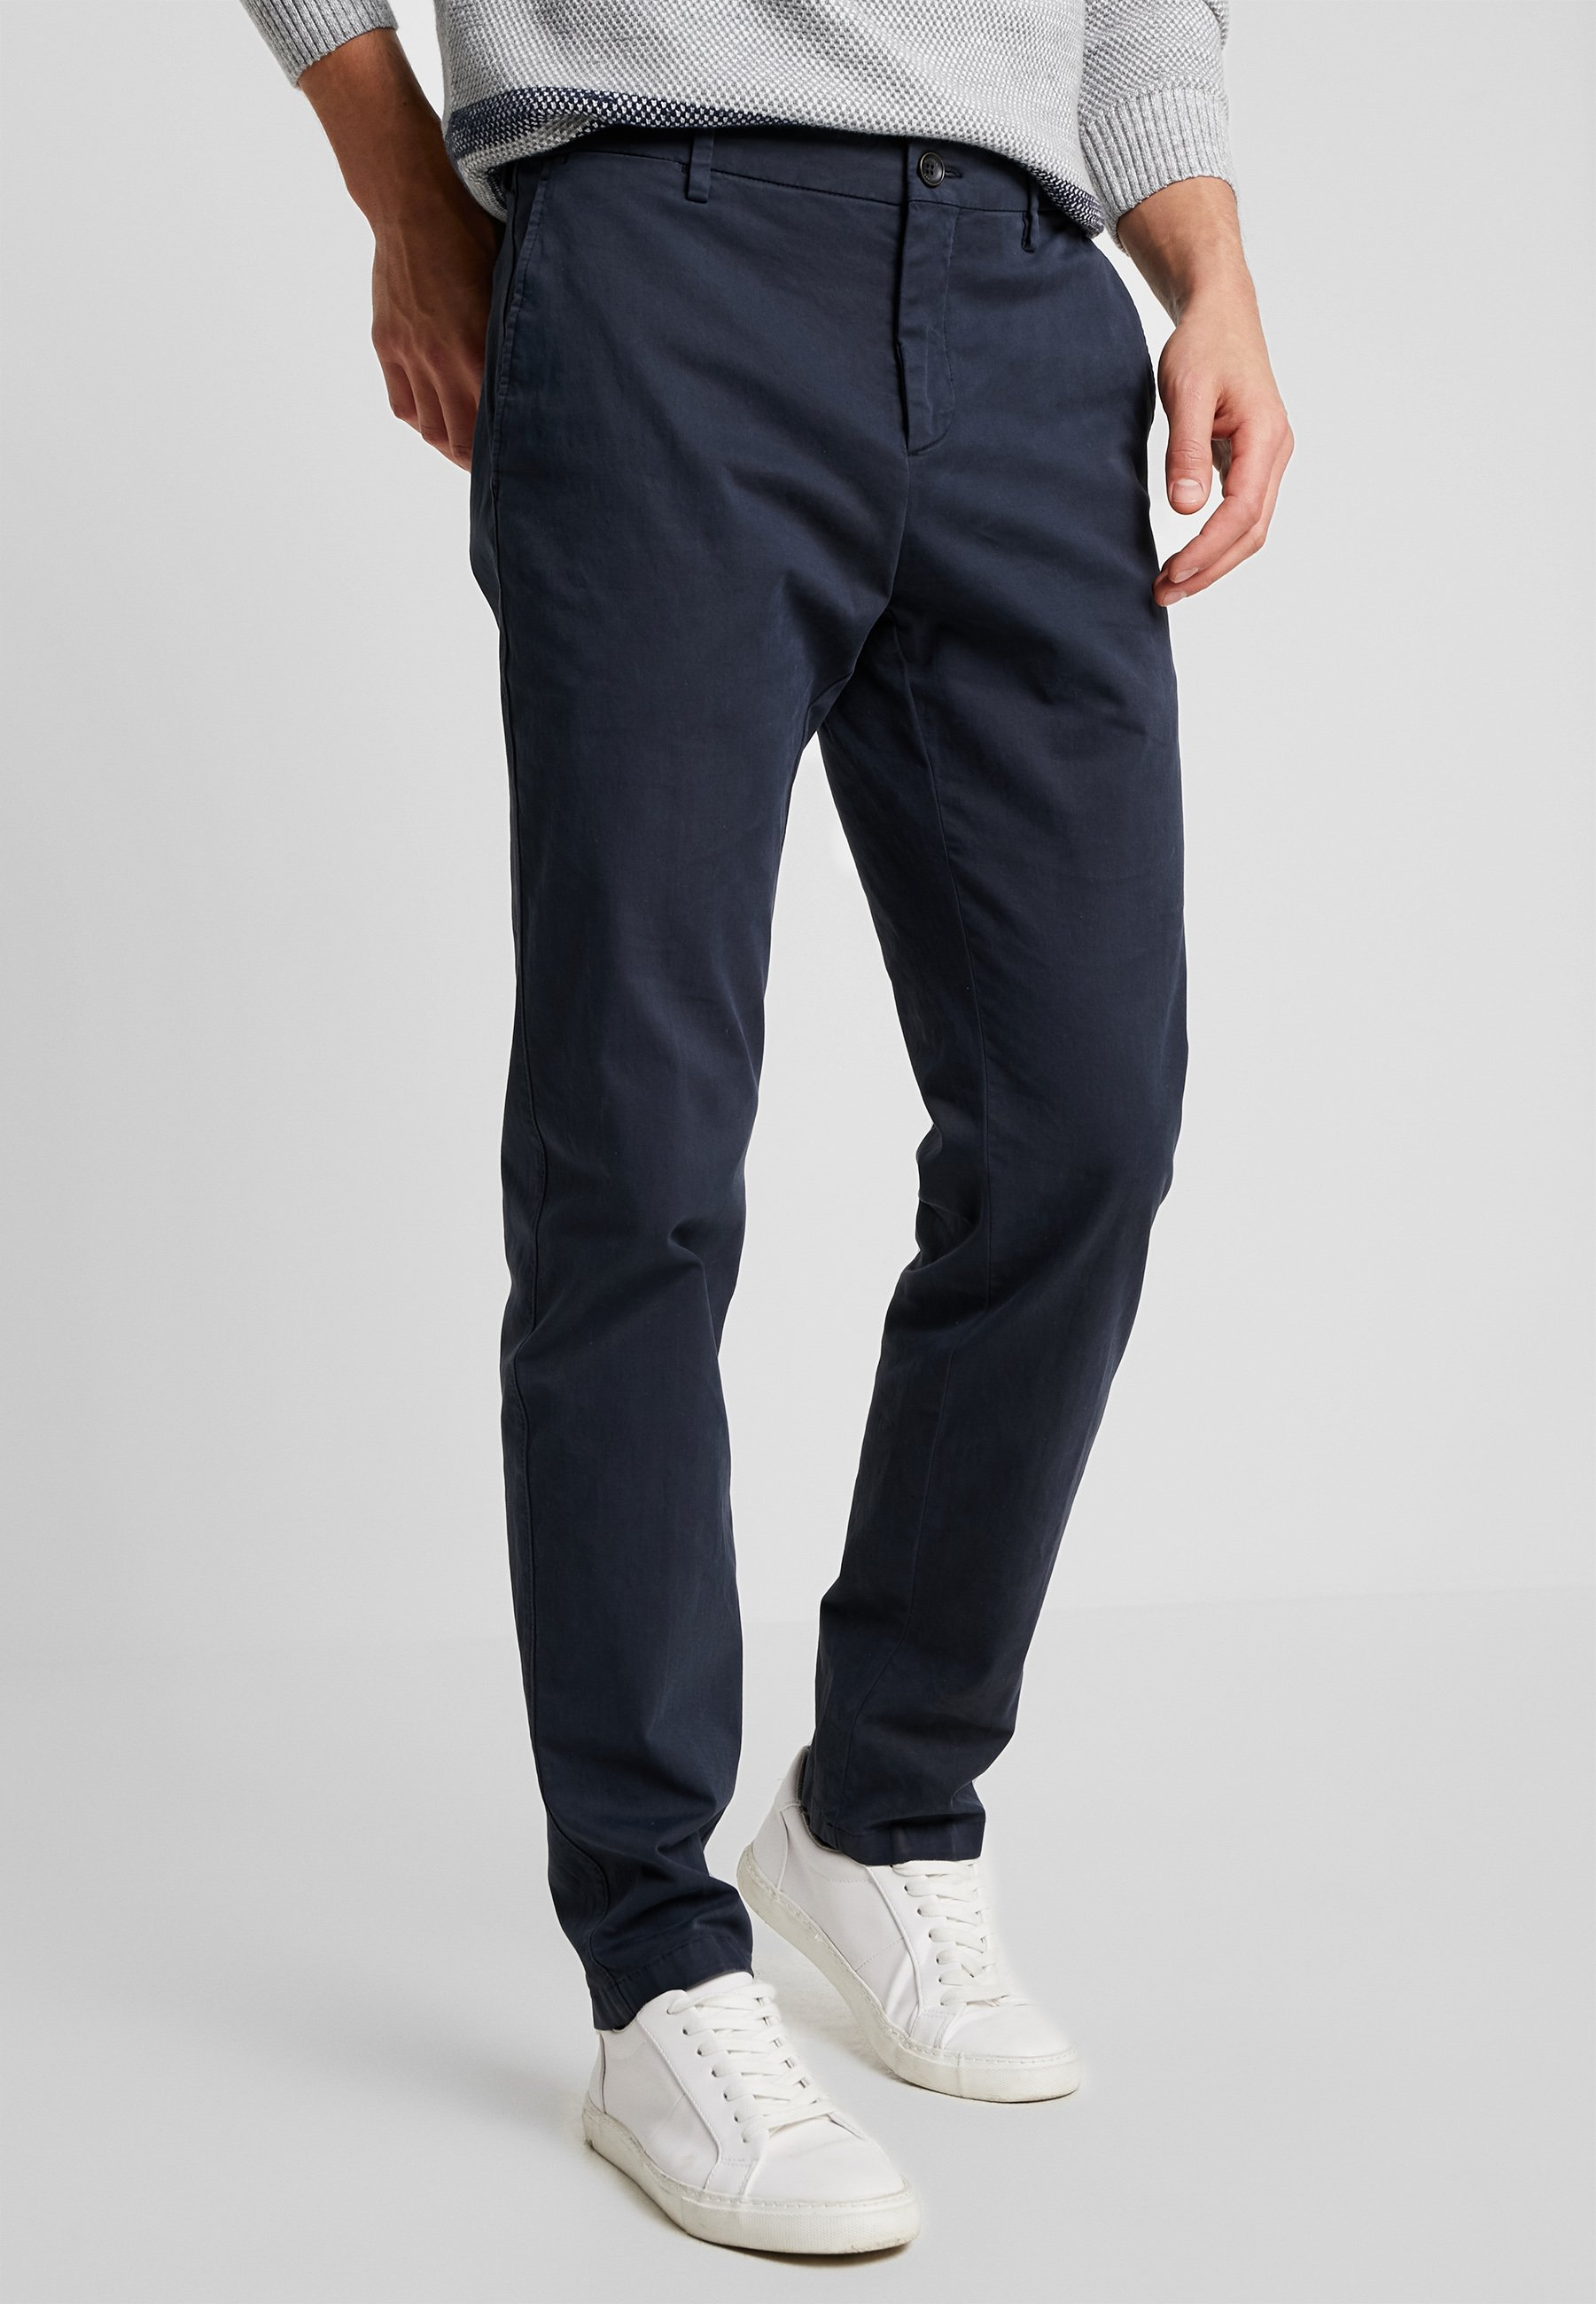 Tommy Hilfiger Tailored Chinos - Navy